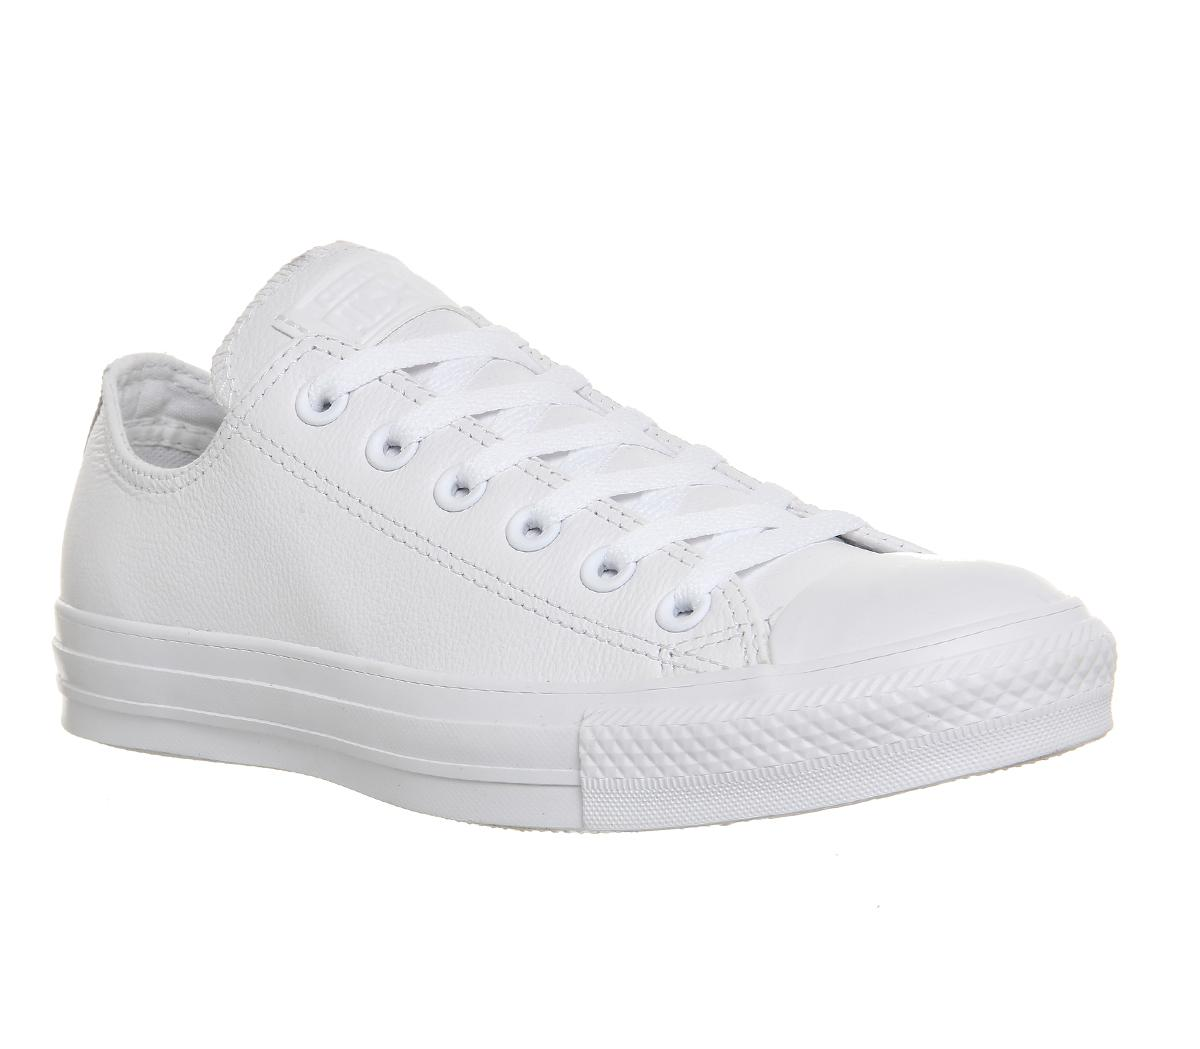 clearance sale arriving outlet store sale All Star Low Leather